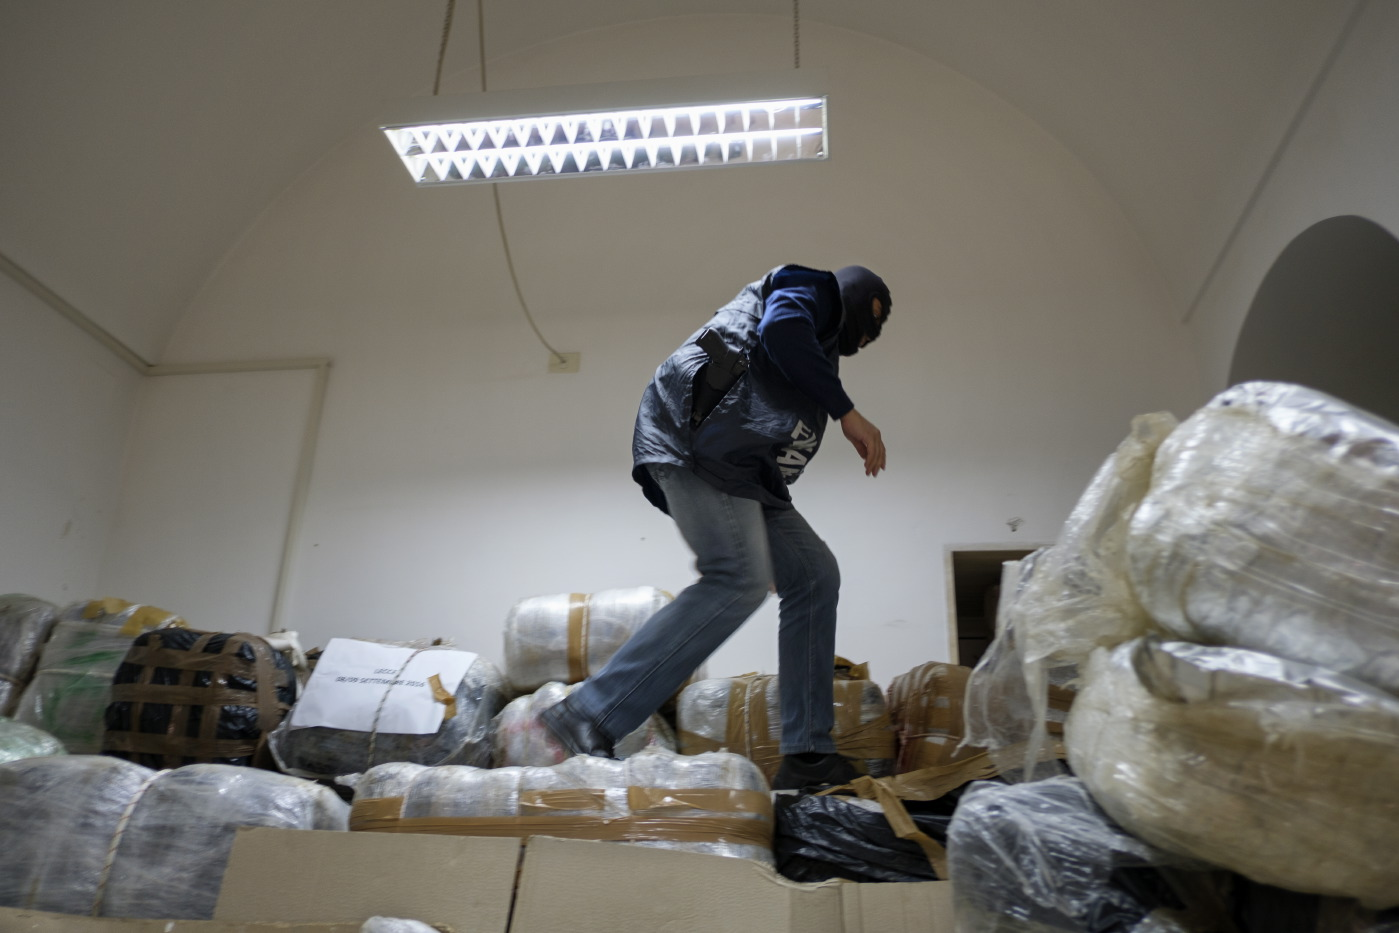 A member of the Counter-narcotics Group (G.O.A.) in the tax unit of the Lecce financial police is seen walking on a pile of bags containing marijuana, to a combined weight of 3 tonnes that were seized in a counter-narcotics operation. Lecce, Italy 2016. © Matteo Bastianelli